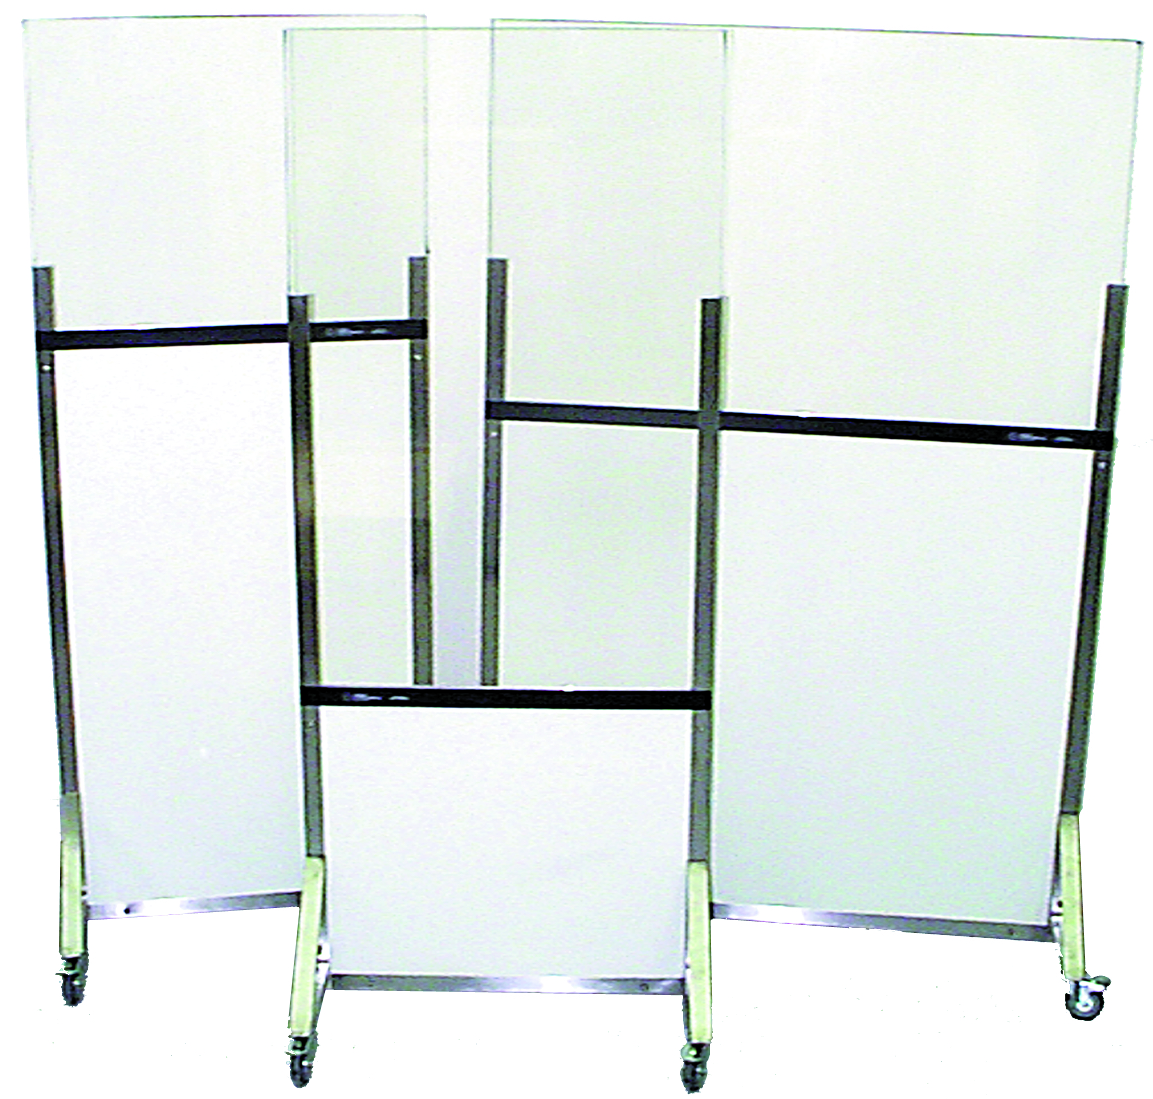 X-Ray Barriers & X-Ray Shielding